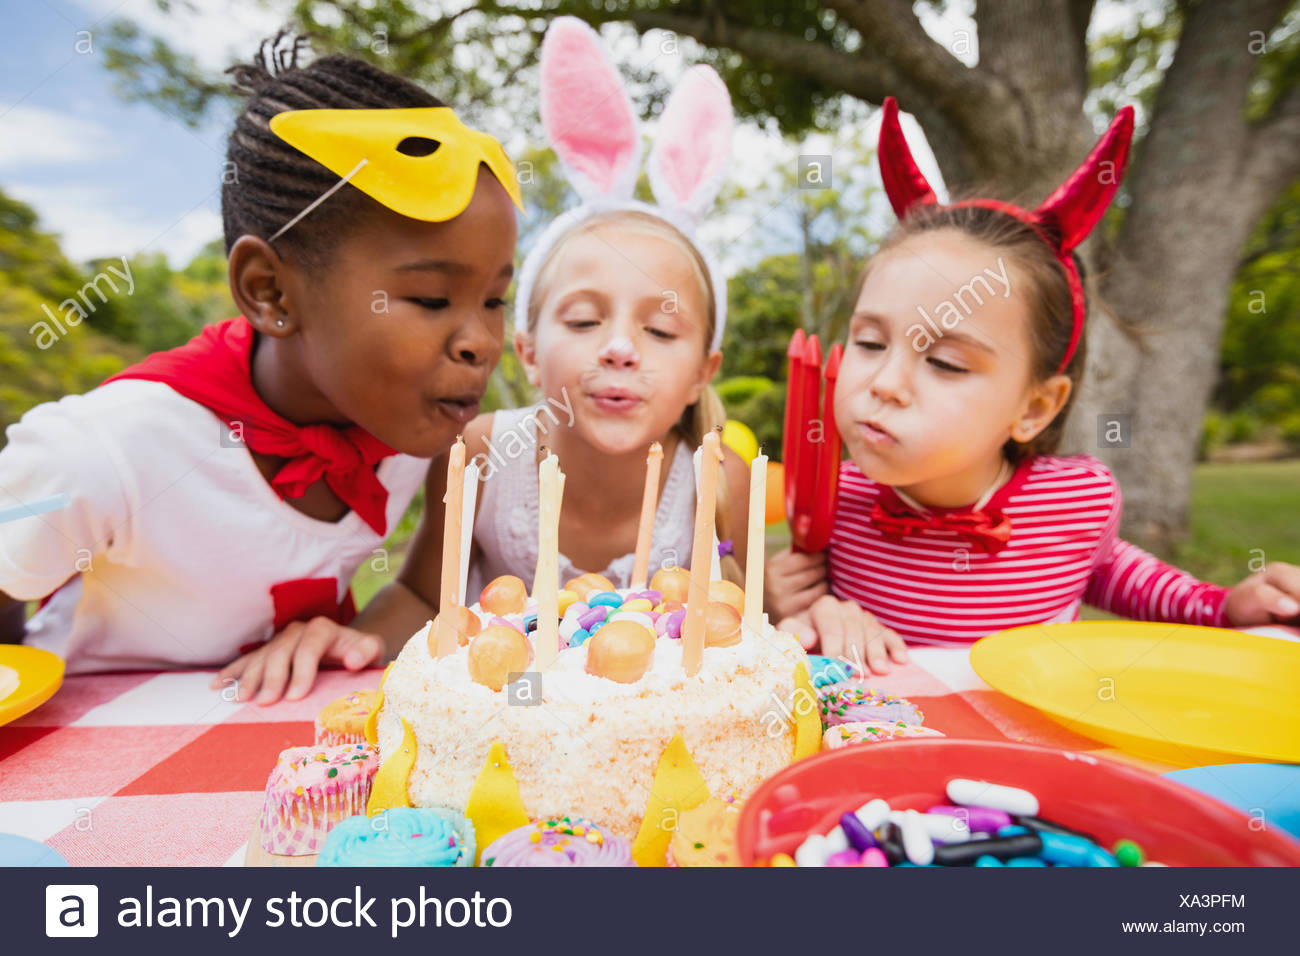 Three little girls blowing together birthday candles - Stock Image